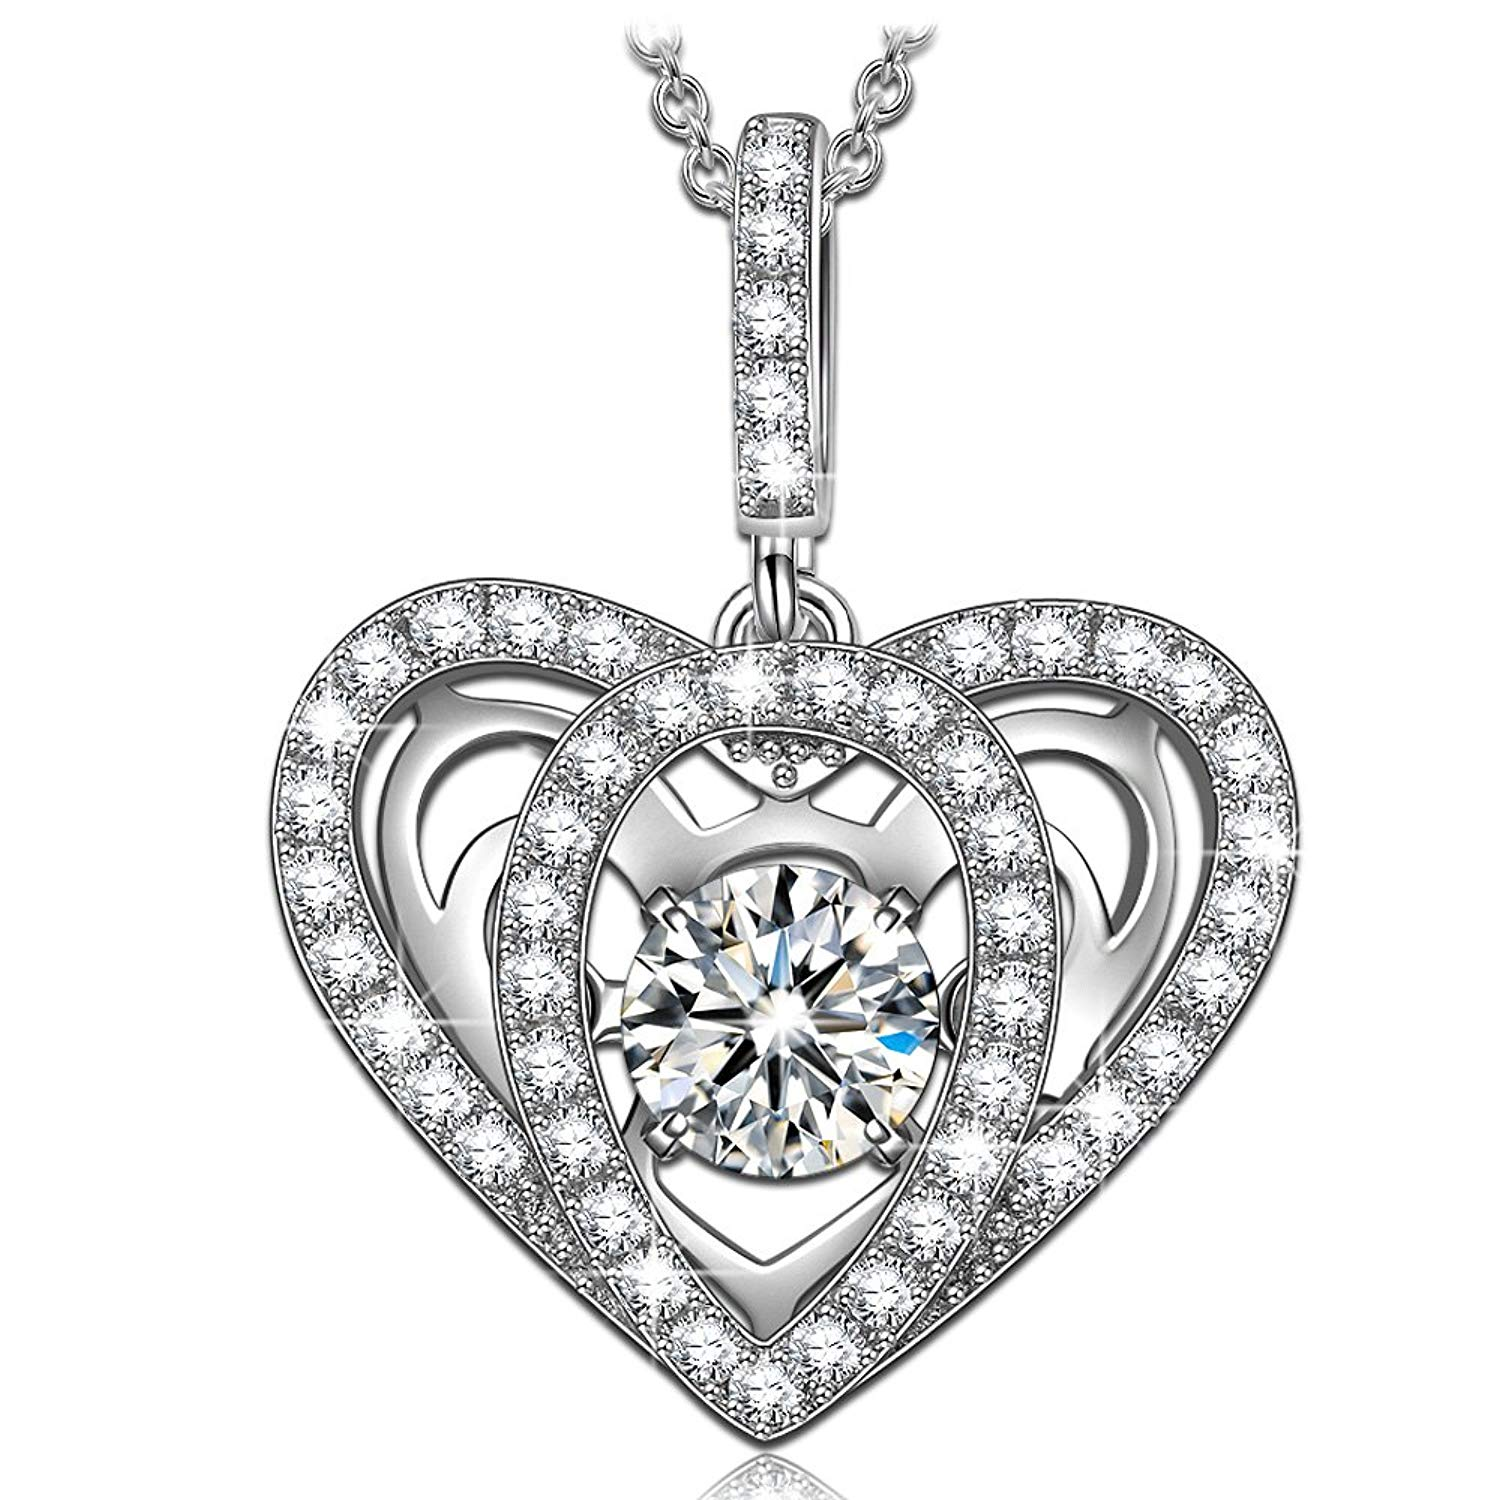 """55d2d5f6fe2 Get Quotations · DANCING HEART 925 Sterling Silver """"Precious Love"""" Necklace"""